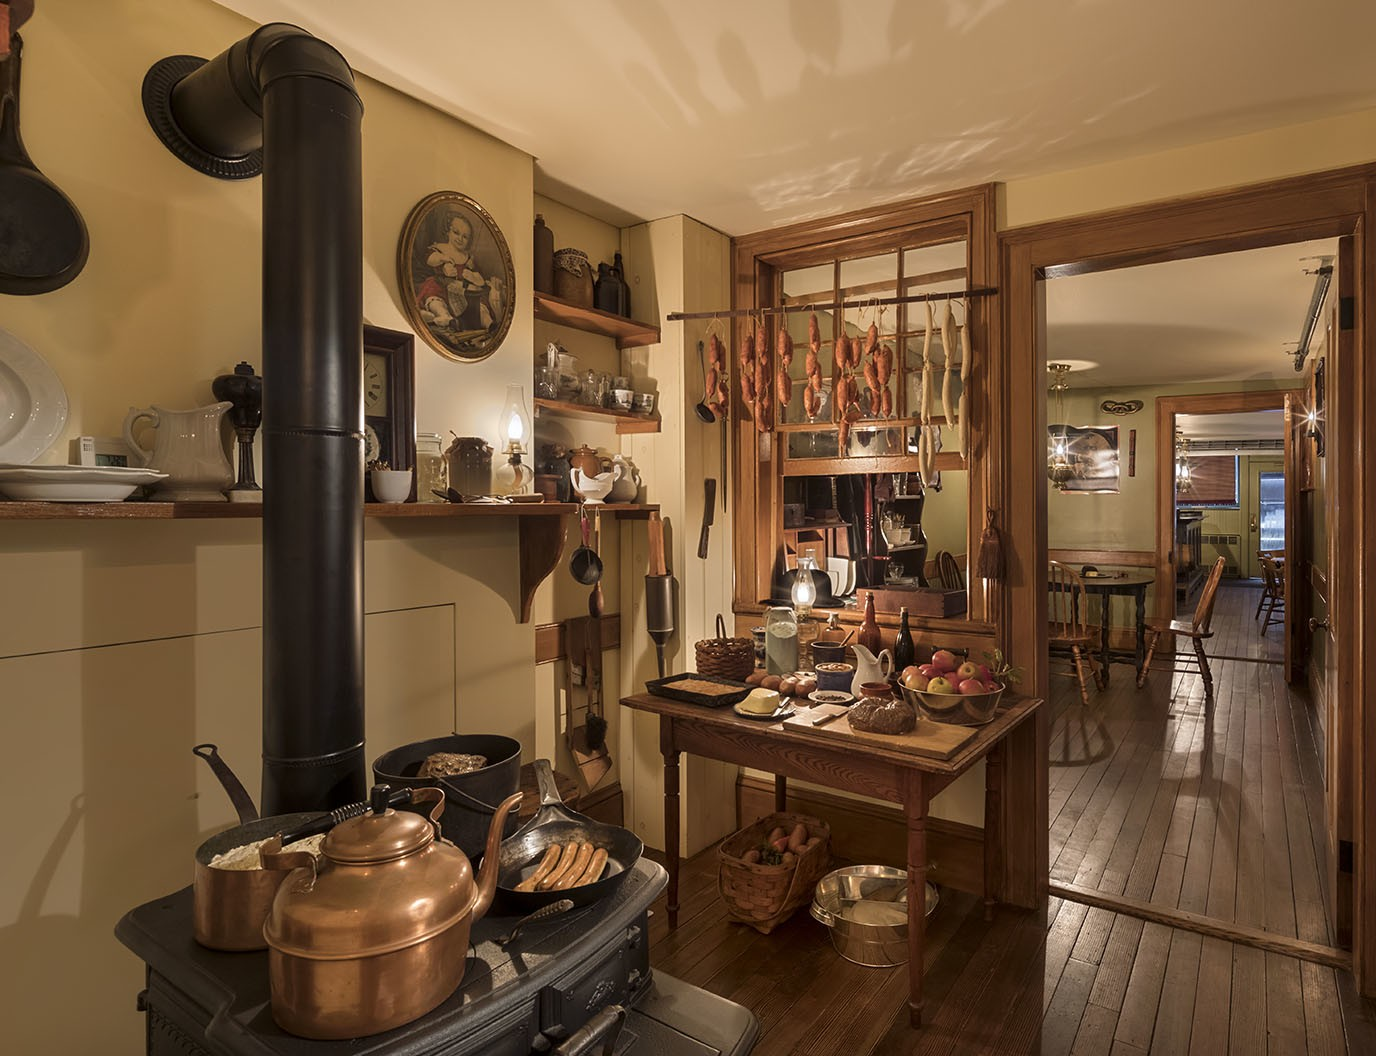 Jars and utensils hang on the wall of a busy kitchen with a large amount of food cooking on an old cast-iron stove and set on a small countertop